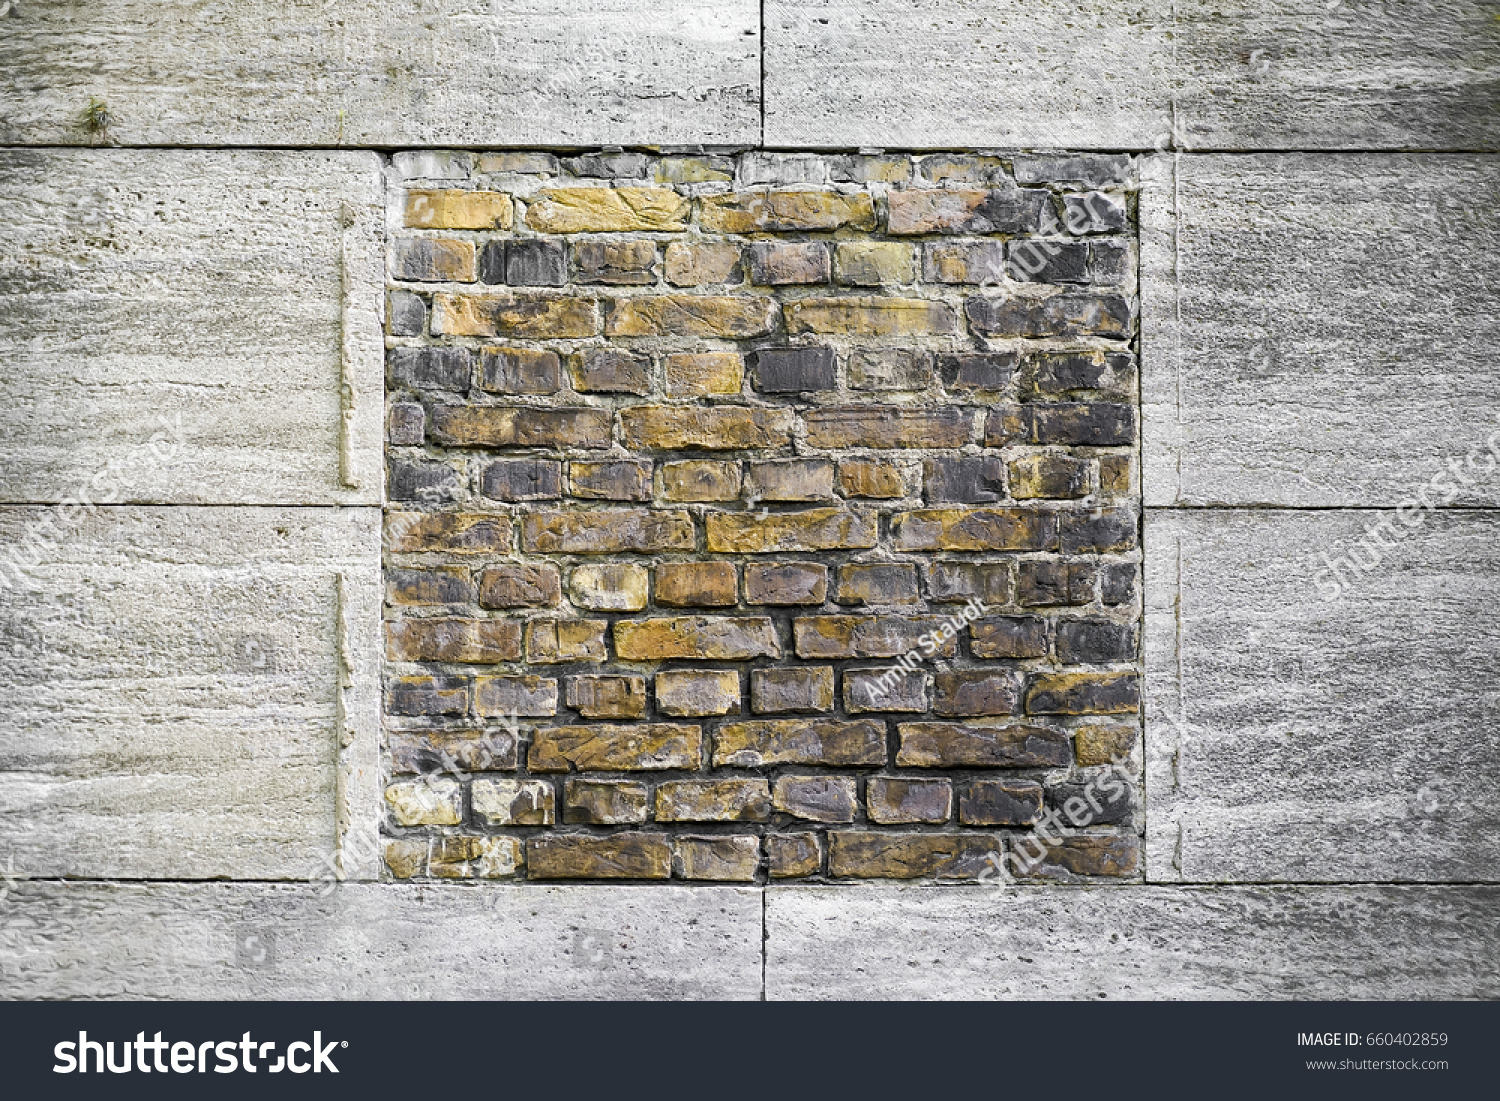 Yellow Brick Wall Framed By Granite Buildings Landmarks Stock Image 660402859